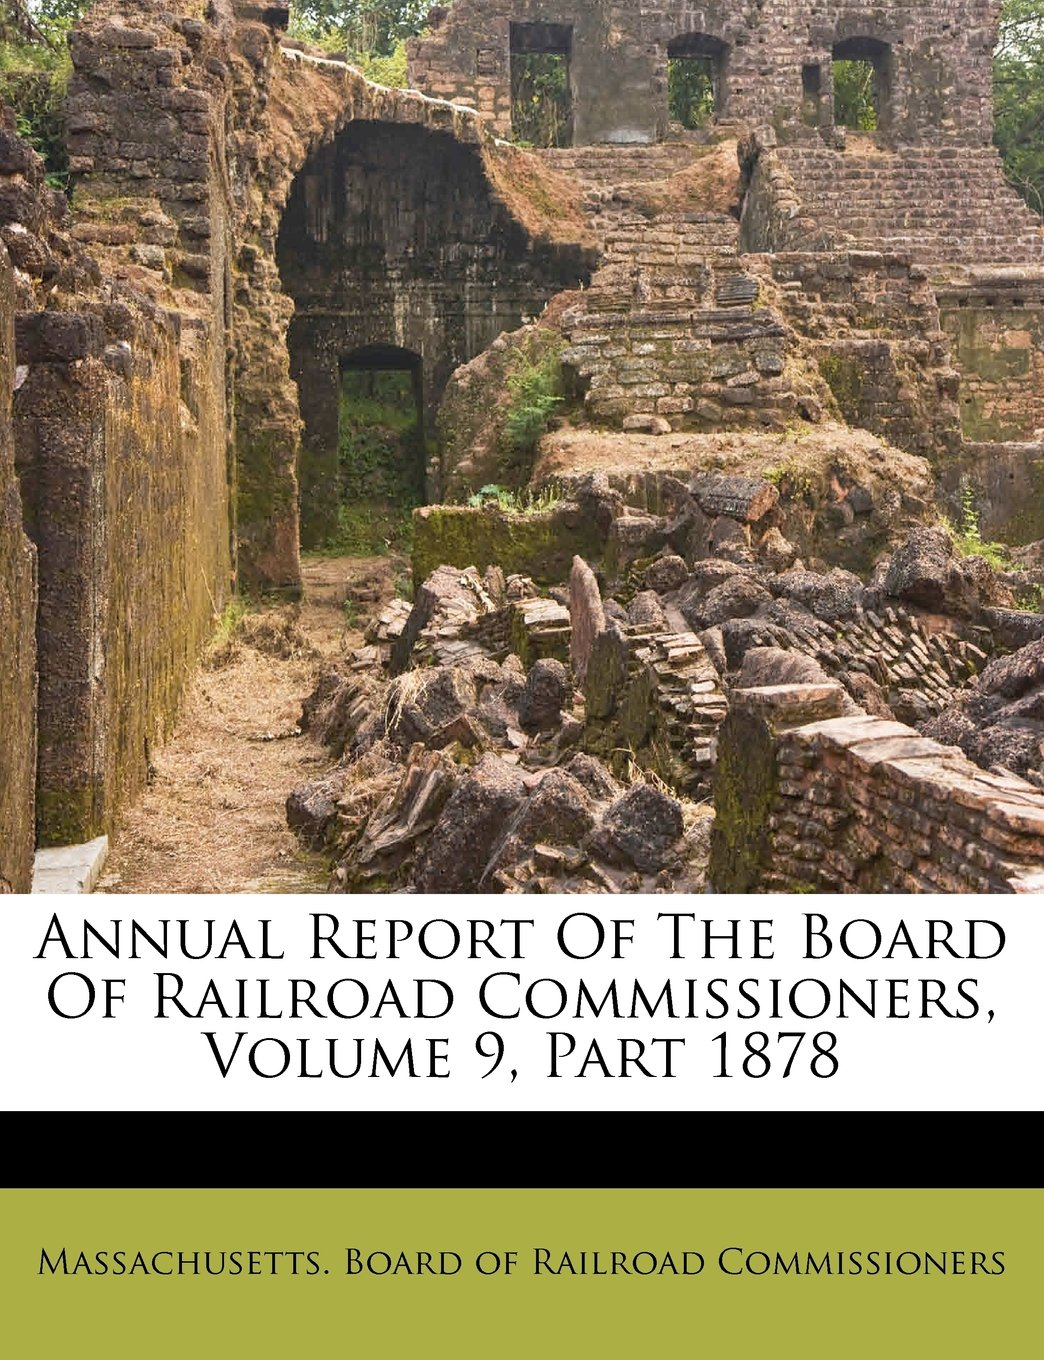 Annual Report Of The Board Of Railroad Commissioners, Volume 9, Part 1878 ebook